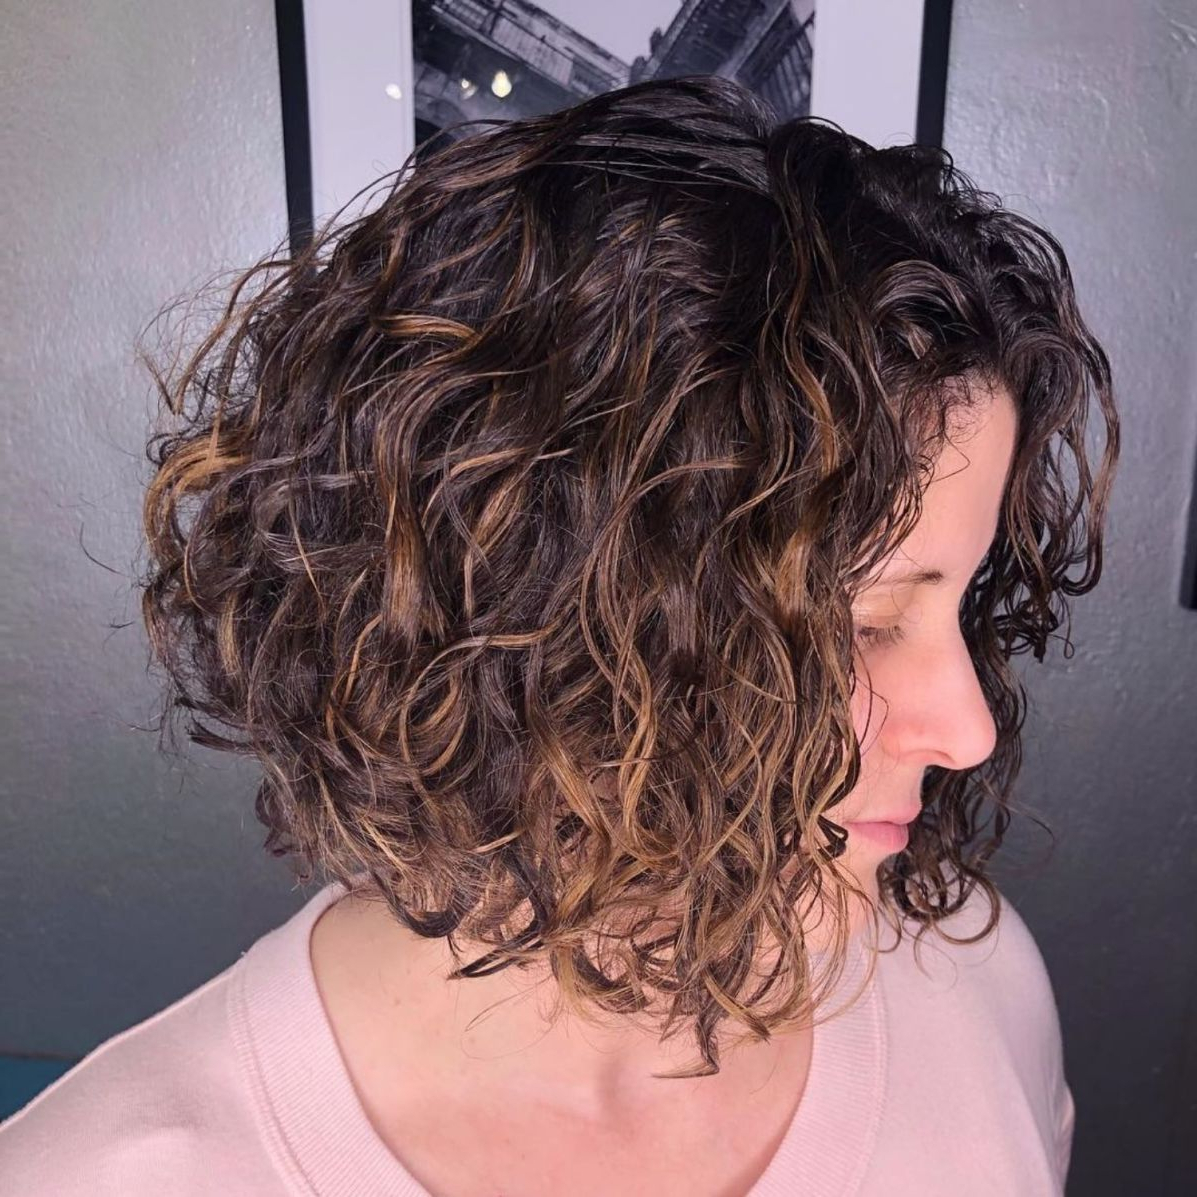 55 Different Versions Of Curly Bob Hairstyle | Me | Pinterest Throughout Short Bob Hairstyles With Whipped Curls And Babylights (View 7 of 20)